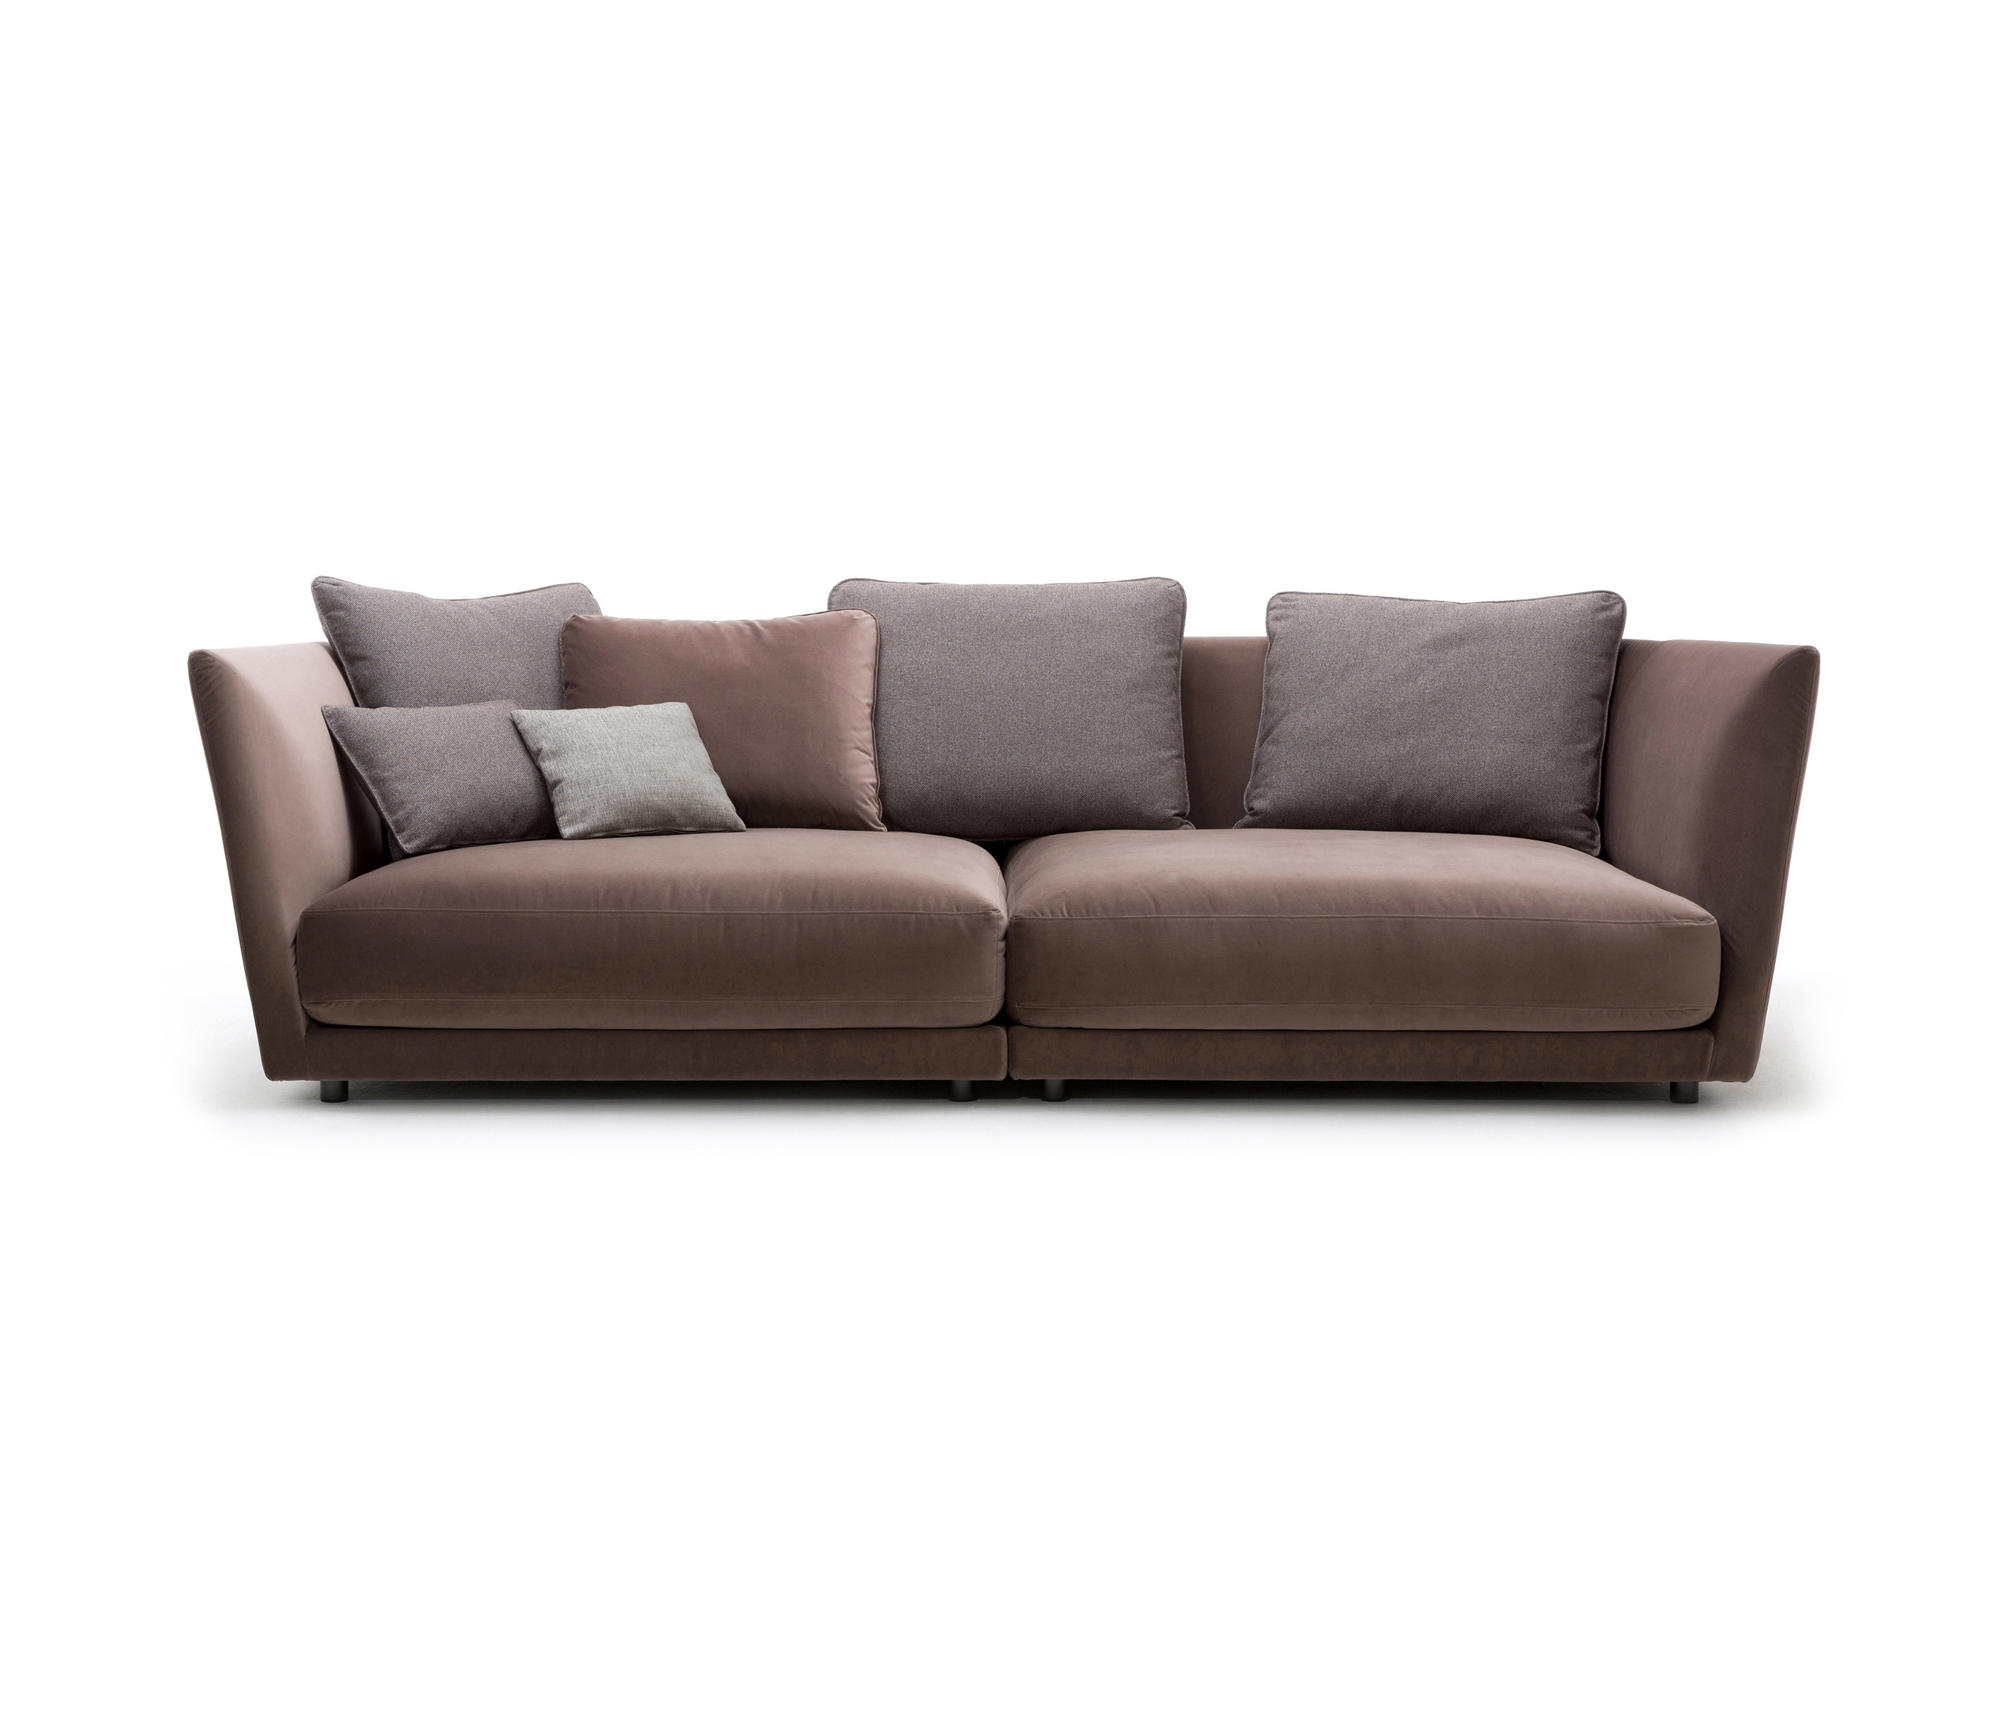 Rolf benz tondo lounge sofas from rolf benz architonic for Rolf benz tondo